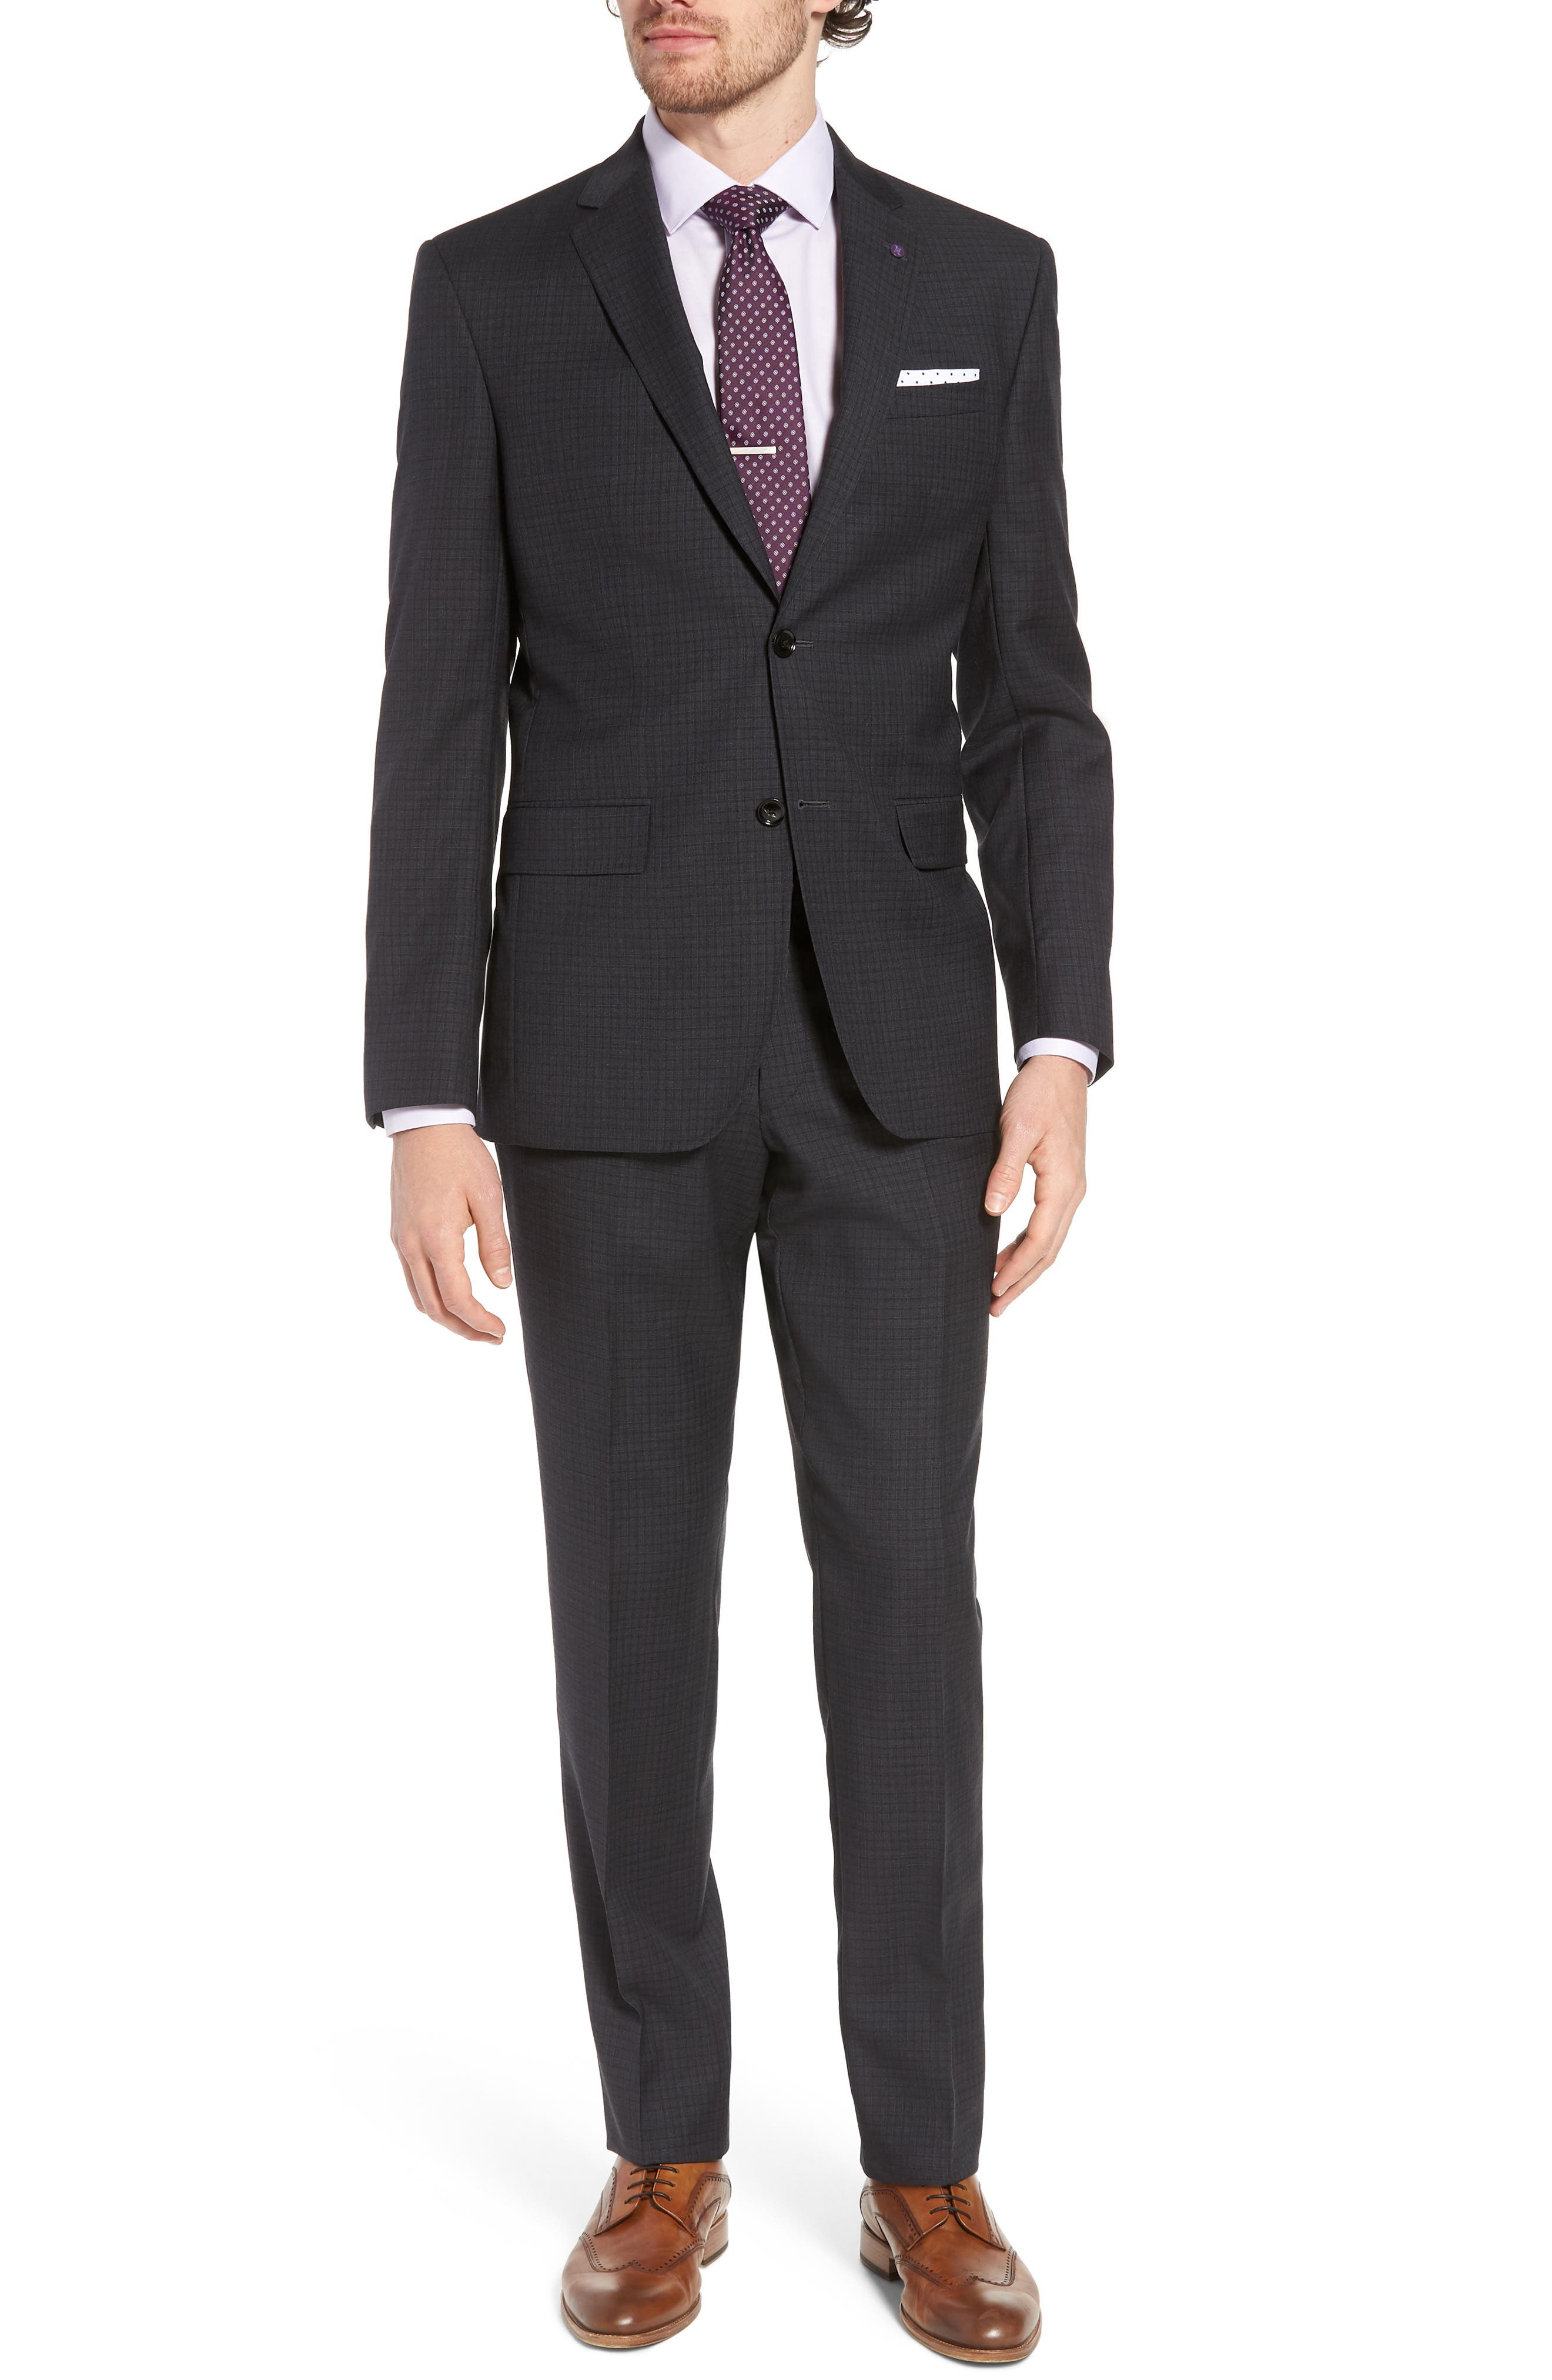 Jay Trim Fit Check Wool Suit,                             Main thumbnail 1, color,                             Charcoal